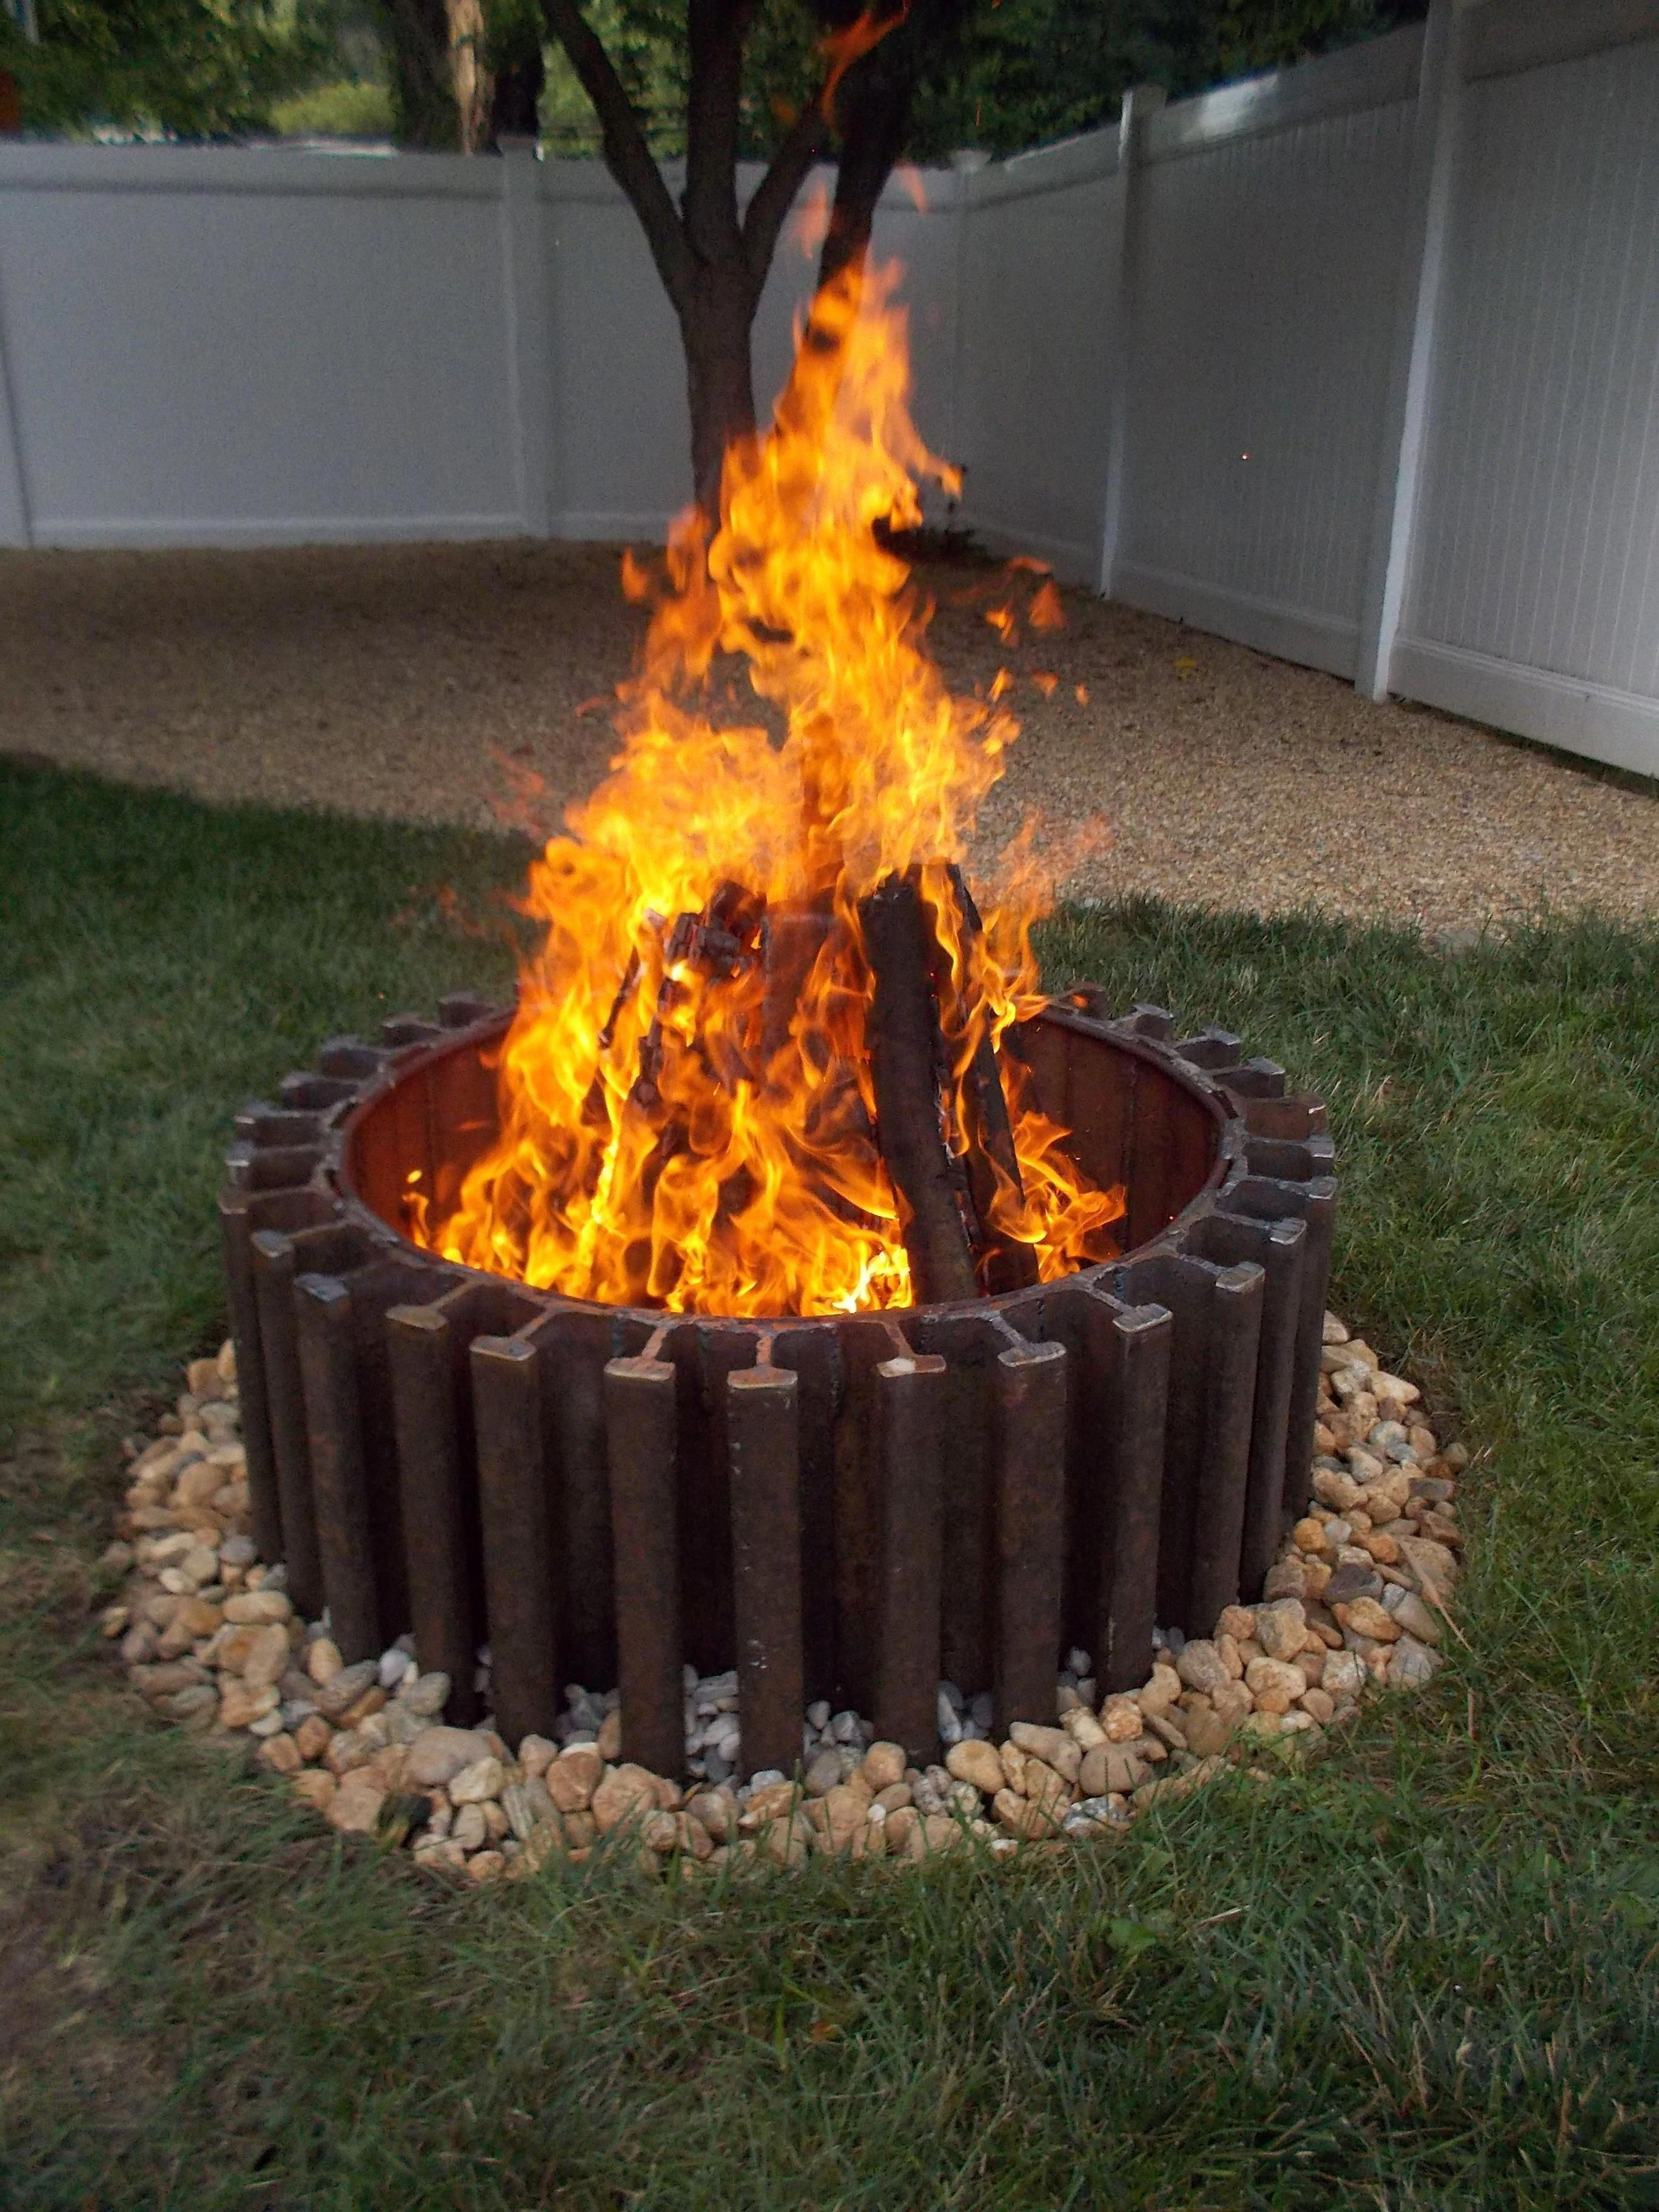 Outdoor Fire Pit Insert Kits Browse Our Creative Concepts Brickfirepit Outside Fire Pits Fire Pit Plans Diy Fire Pit